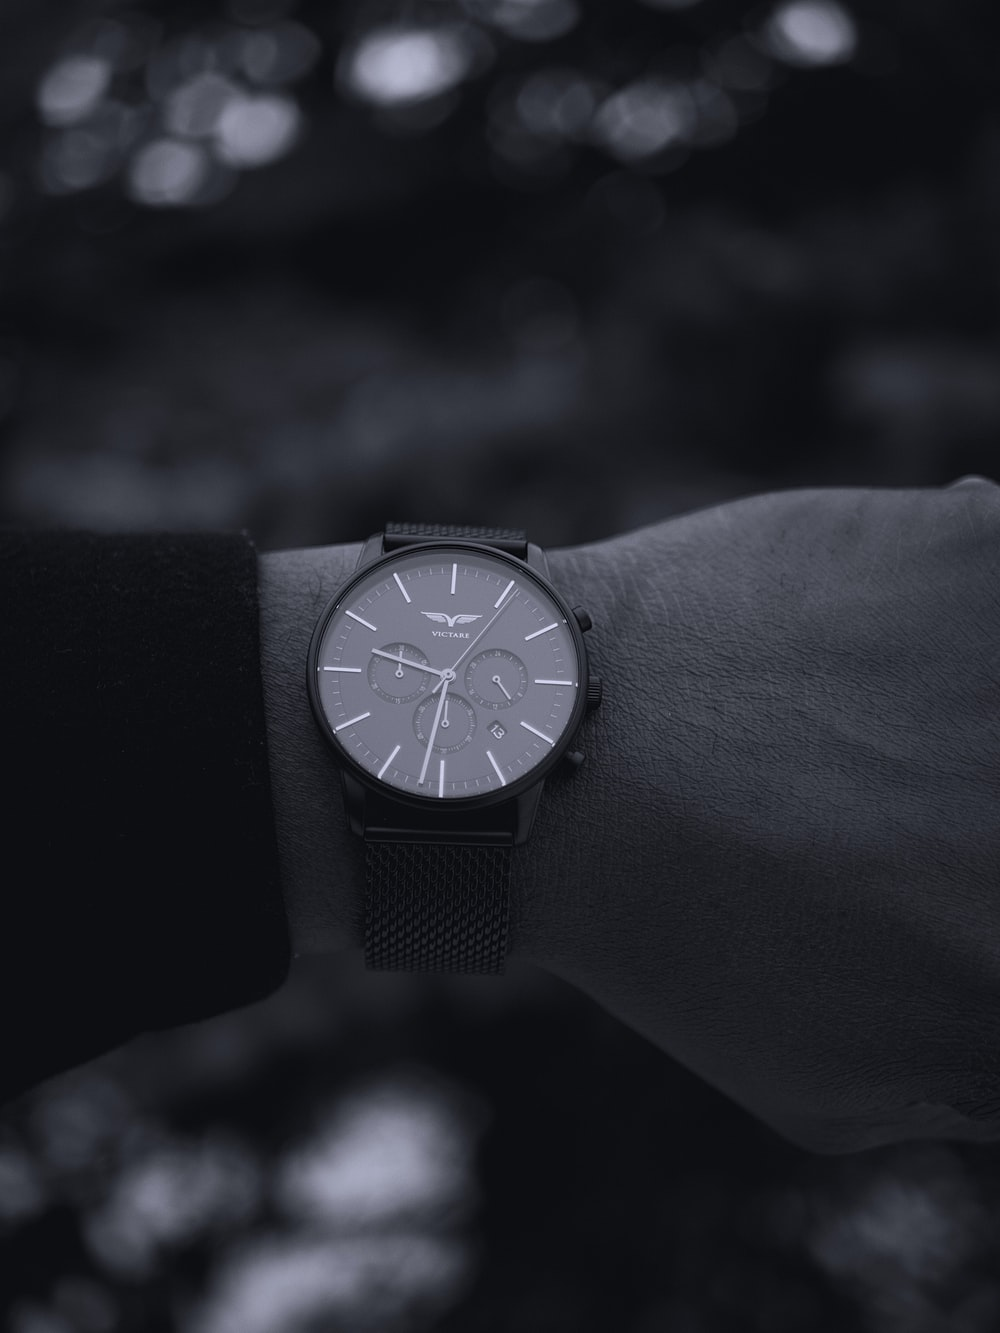 grayscale photo of person wearing round black chronograph watch